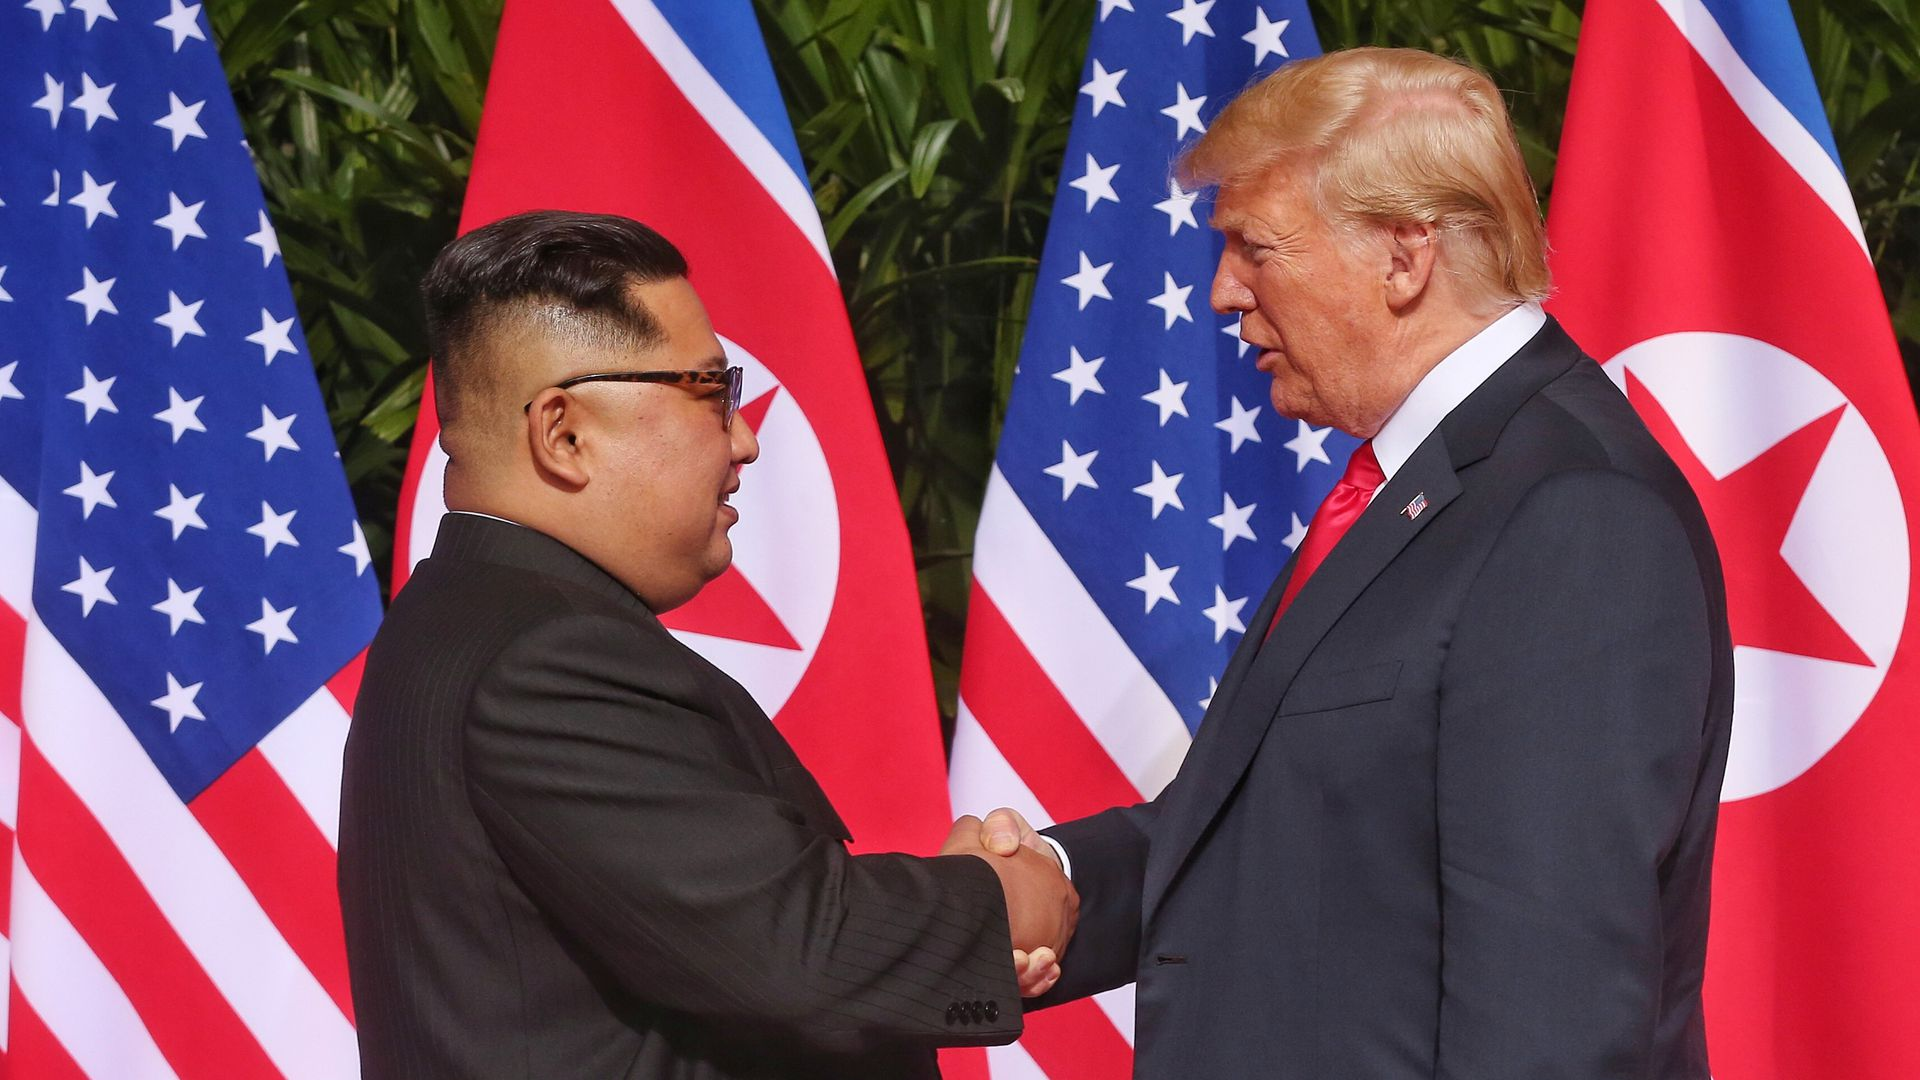 North Korean leader Kim Jong-un and President Trump during their historic  summit in Singapore last month. Photo: Handout/Getty Images